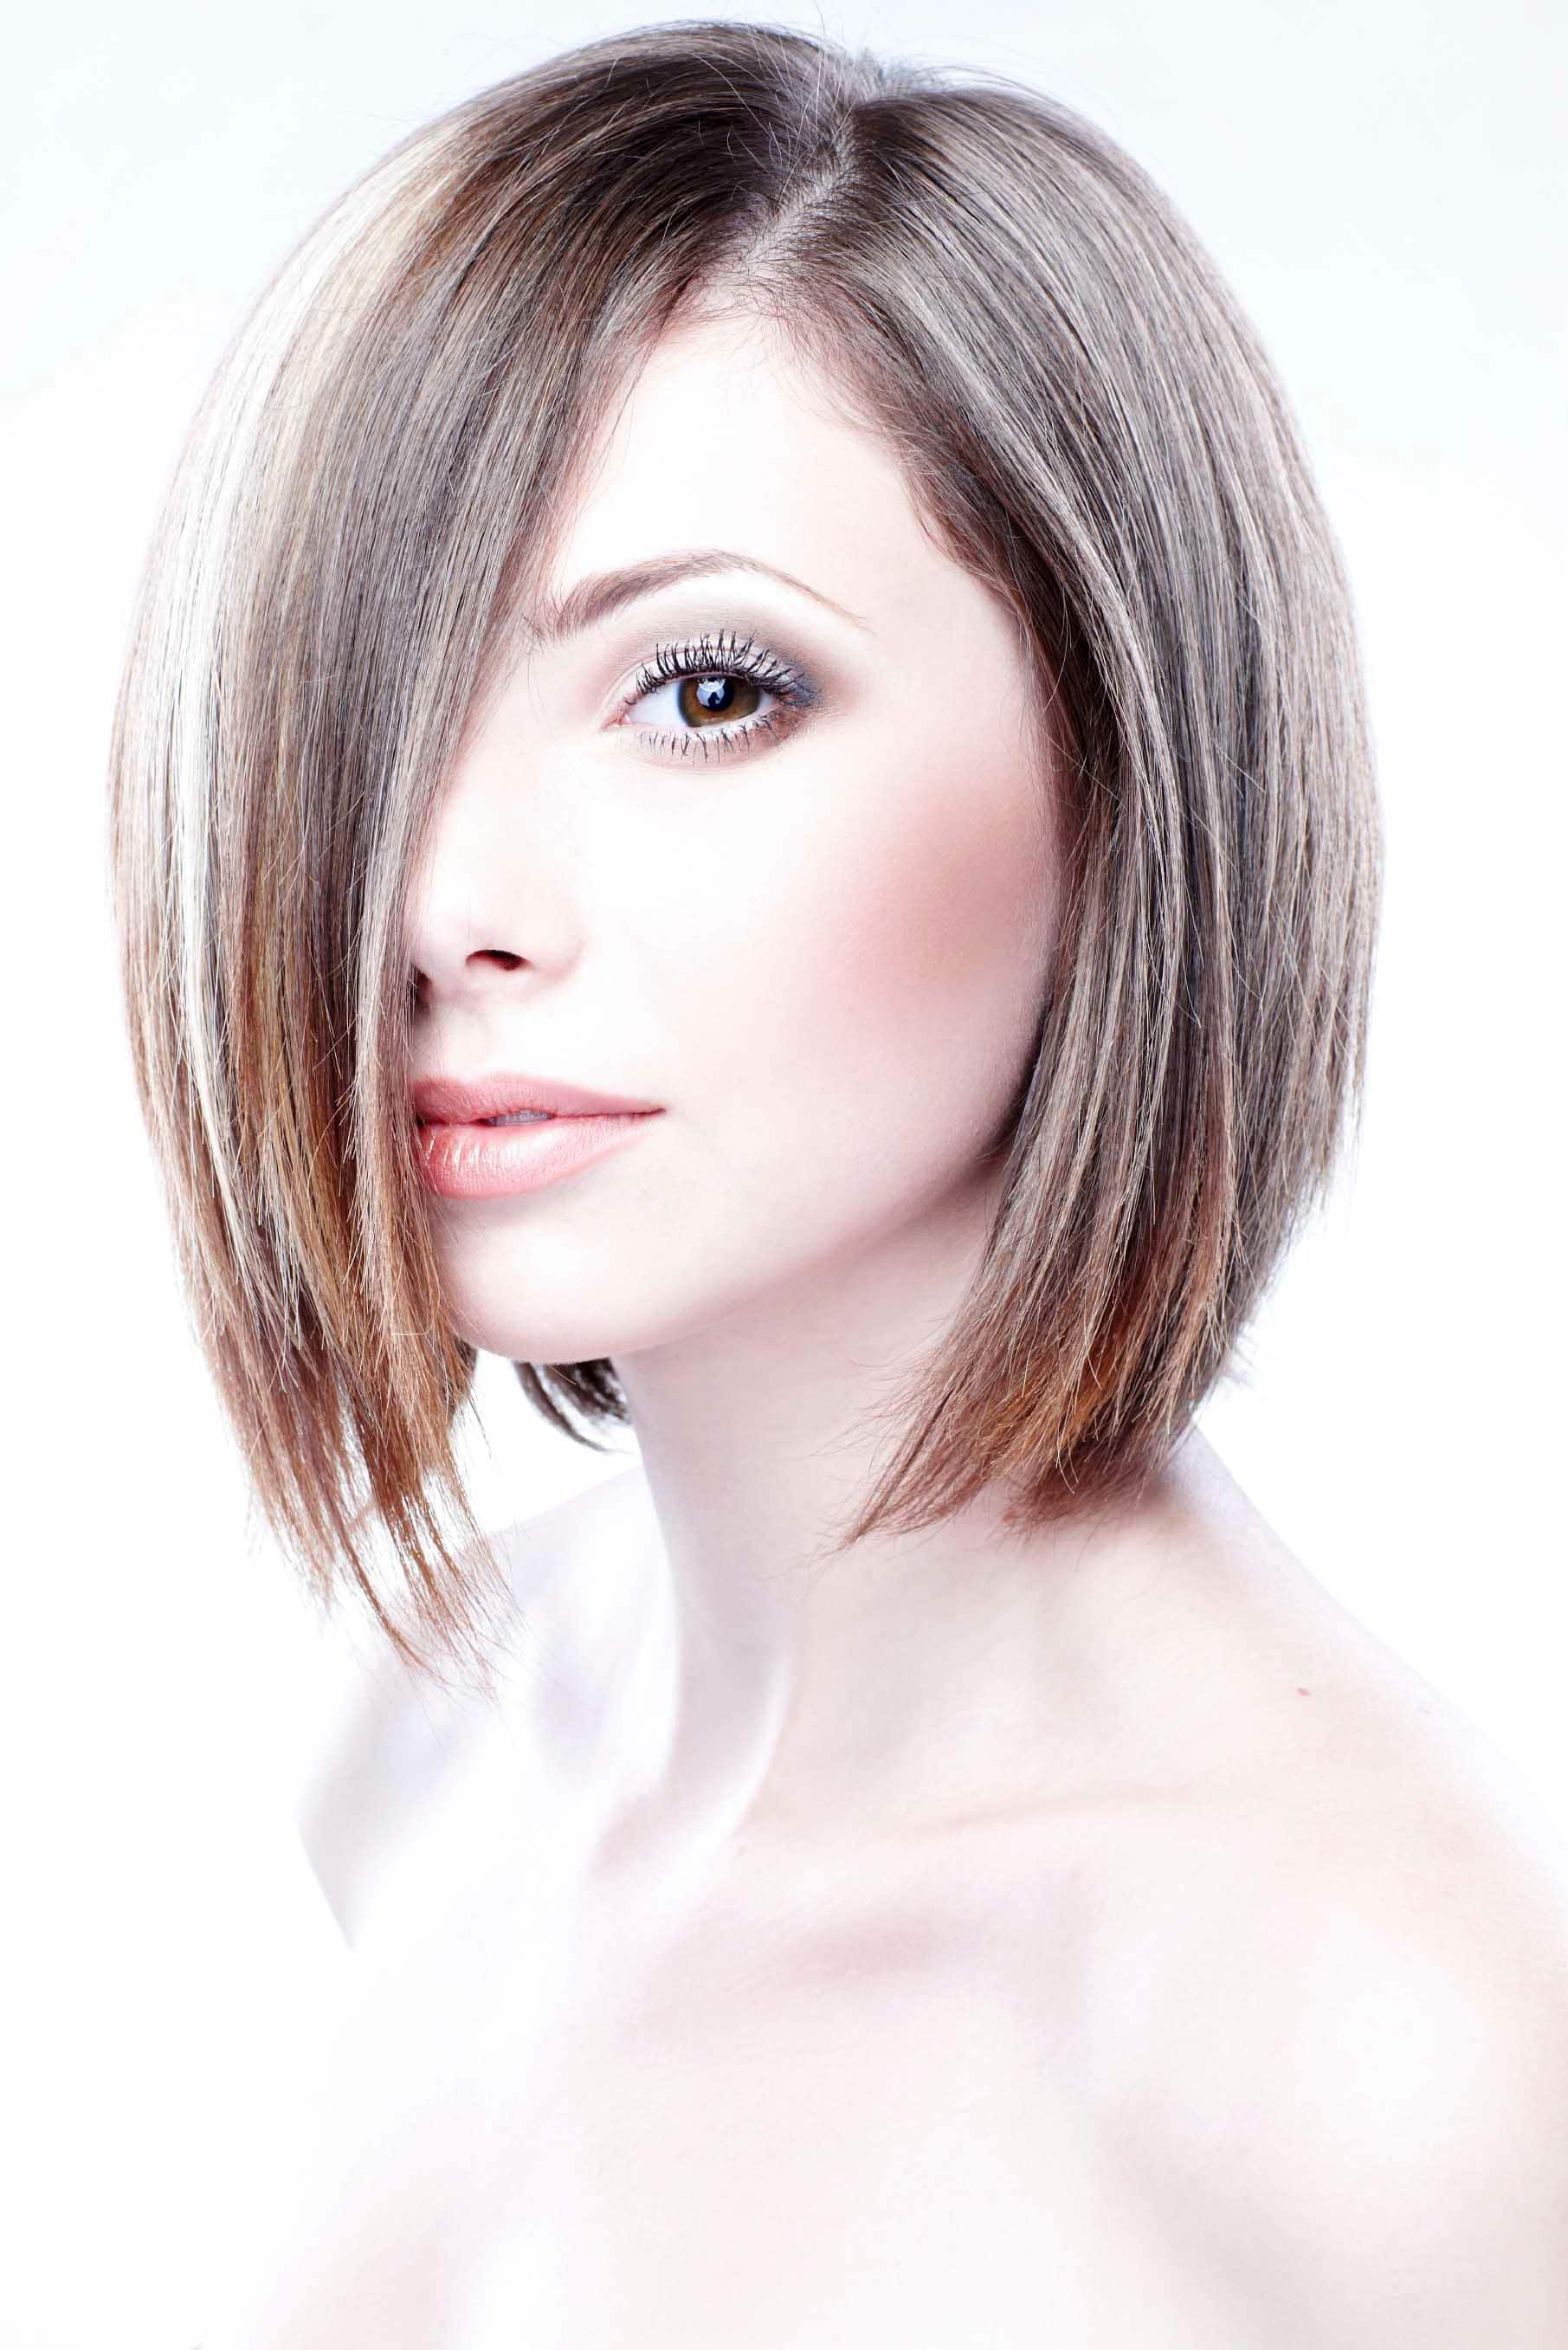 Bob Haircuts Guide: Inspirational Hairstyles, Tips and Trends